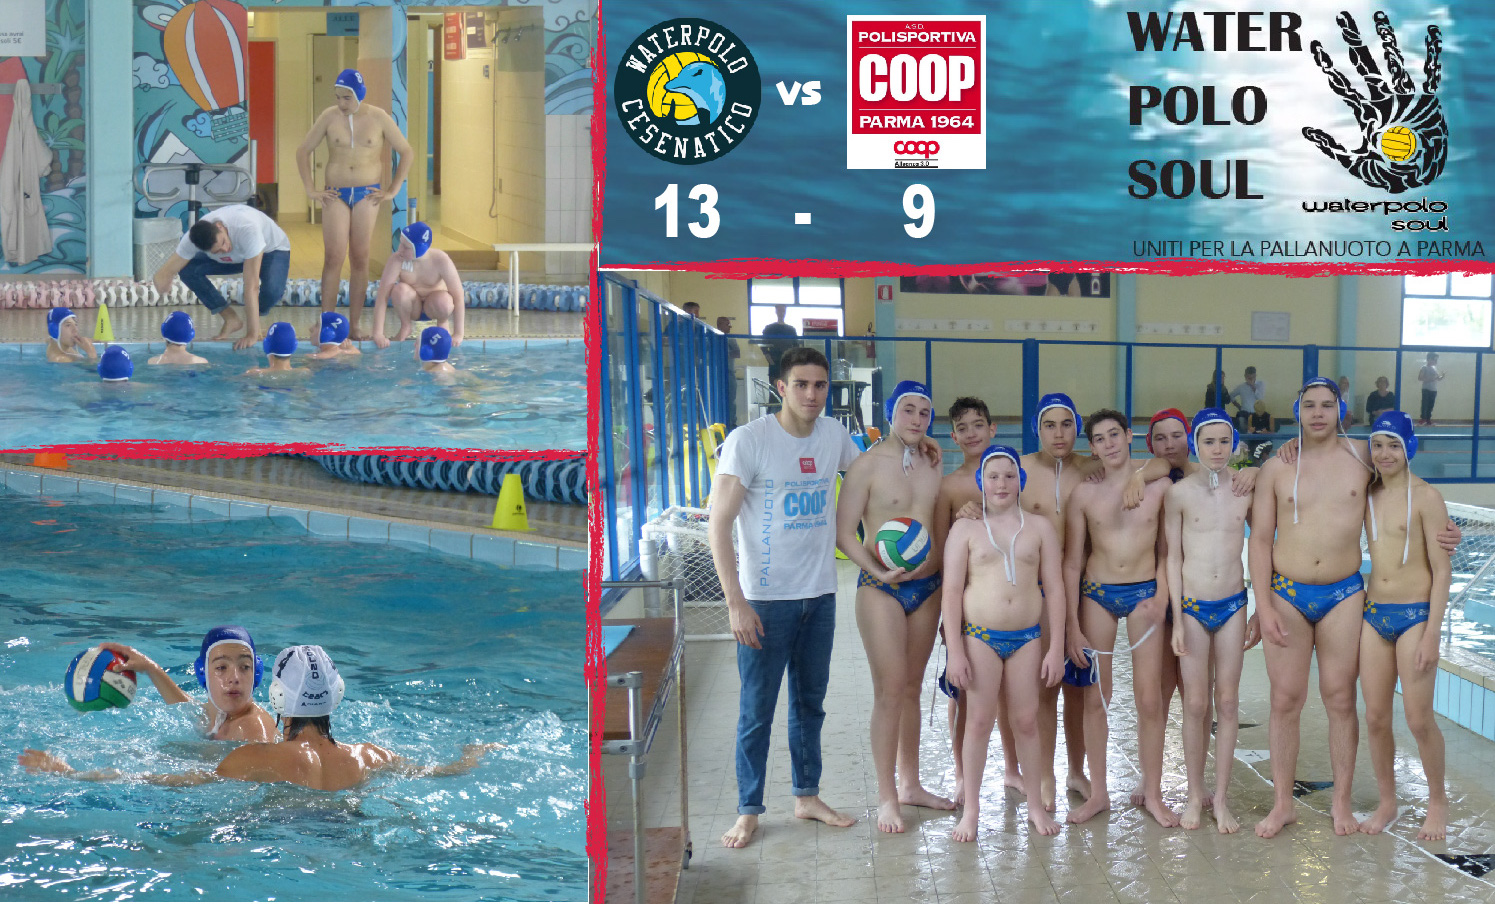 173a92bf287d Leve Uisp – Waterpolosoul